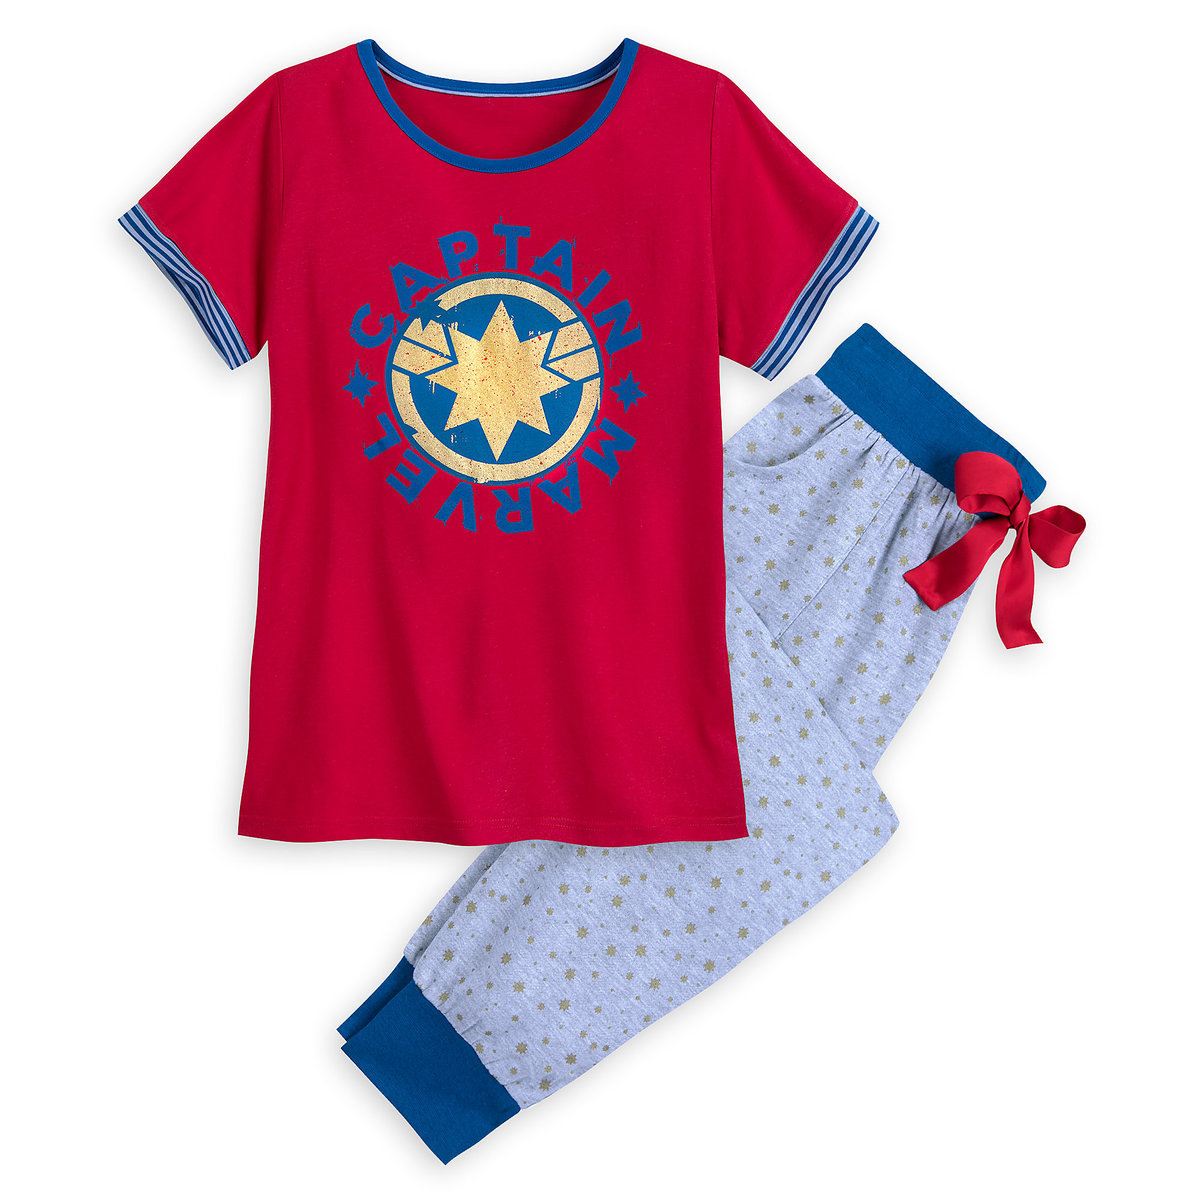 7364705d Product Image of Marvel's Captain Marvel Pajama Set for Women # 1